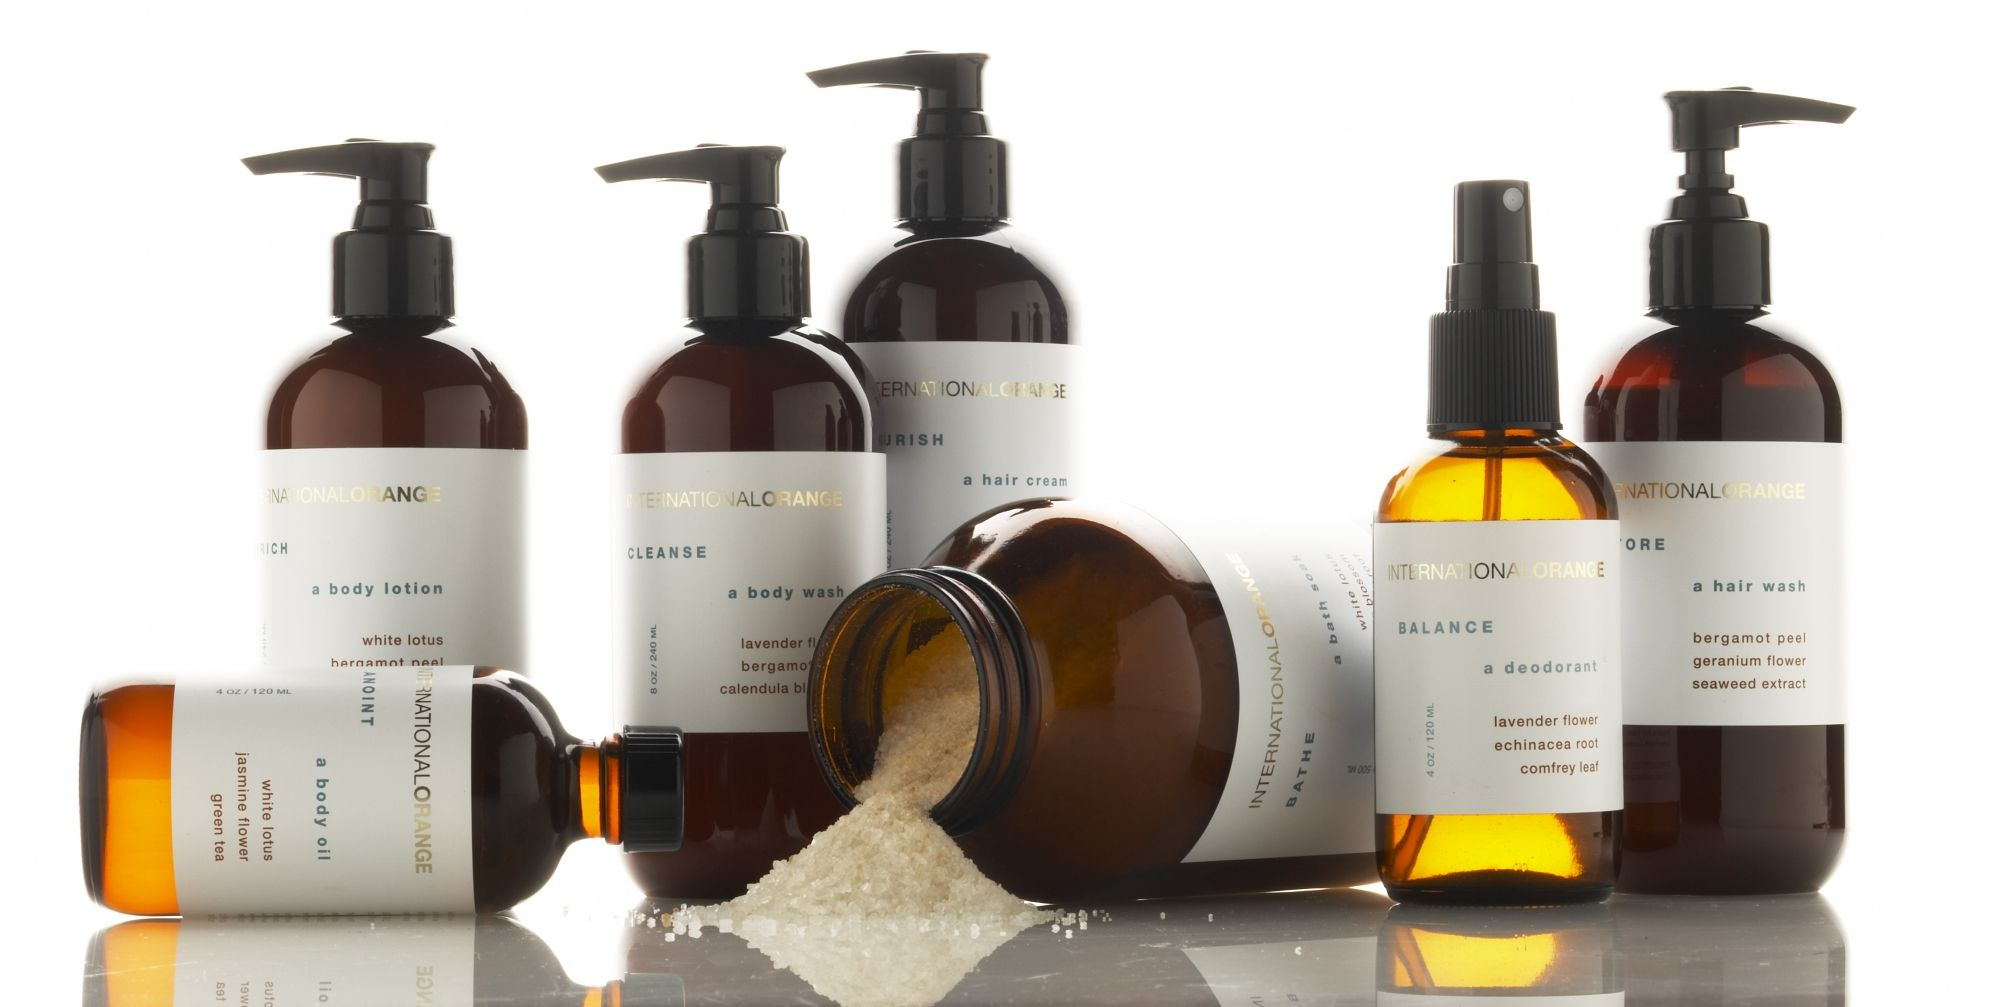 The careful selection of each ingredient in our product line reflects our strict standard of quality and purity. No synthetic elements are even considered. Each product is made with certified organic, wild-crafted or biodynamically grown ingredients of the highest integrity and are sourced from the finest available growers. All vegetable oils and butters are fair trade.